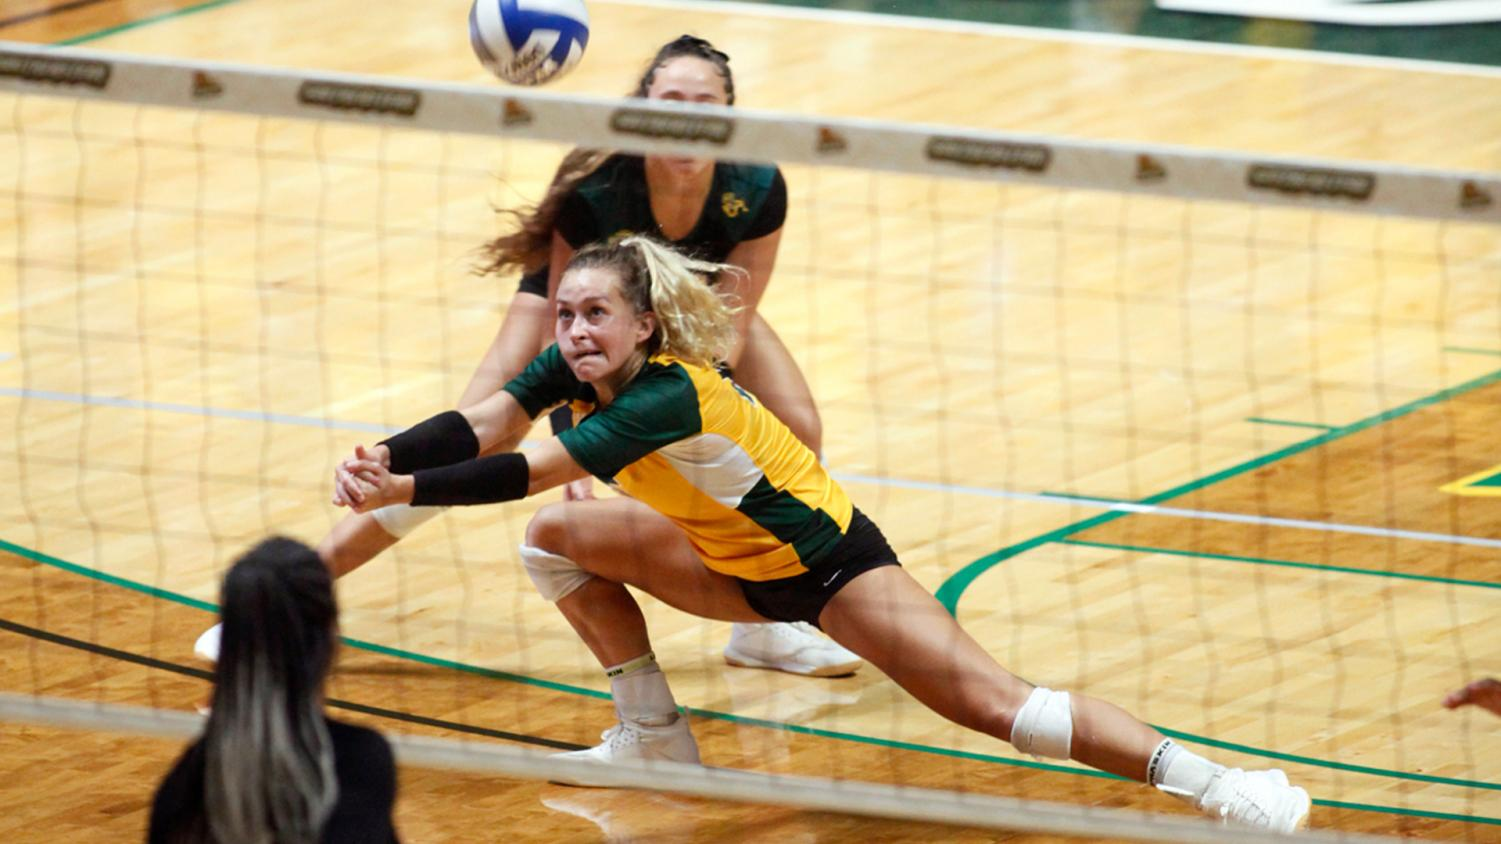 Junior outside hitter Caroline Golden goes for a dig. The Lady Lions improved with 12 more wins in the 2019 season than the 2018 season. The Lady Lions will start their inaugural beach volleyball season in the 2020 spring semester.